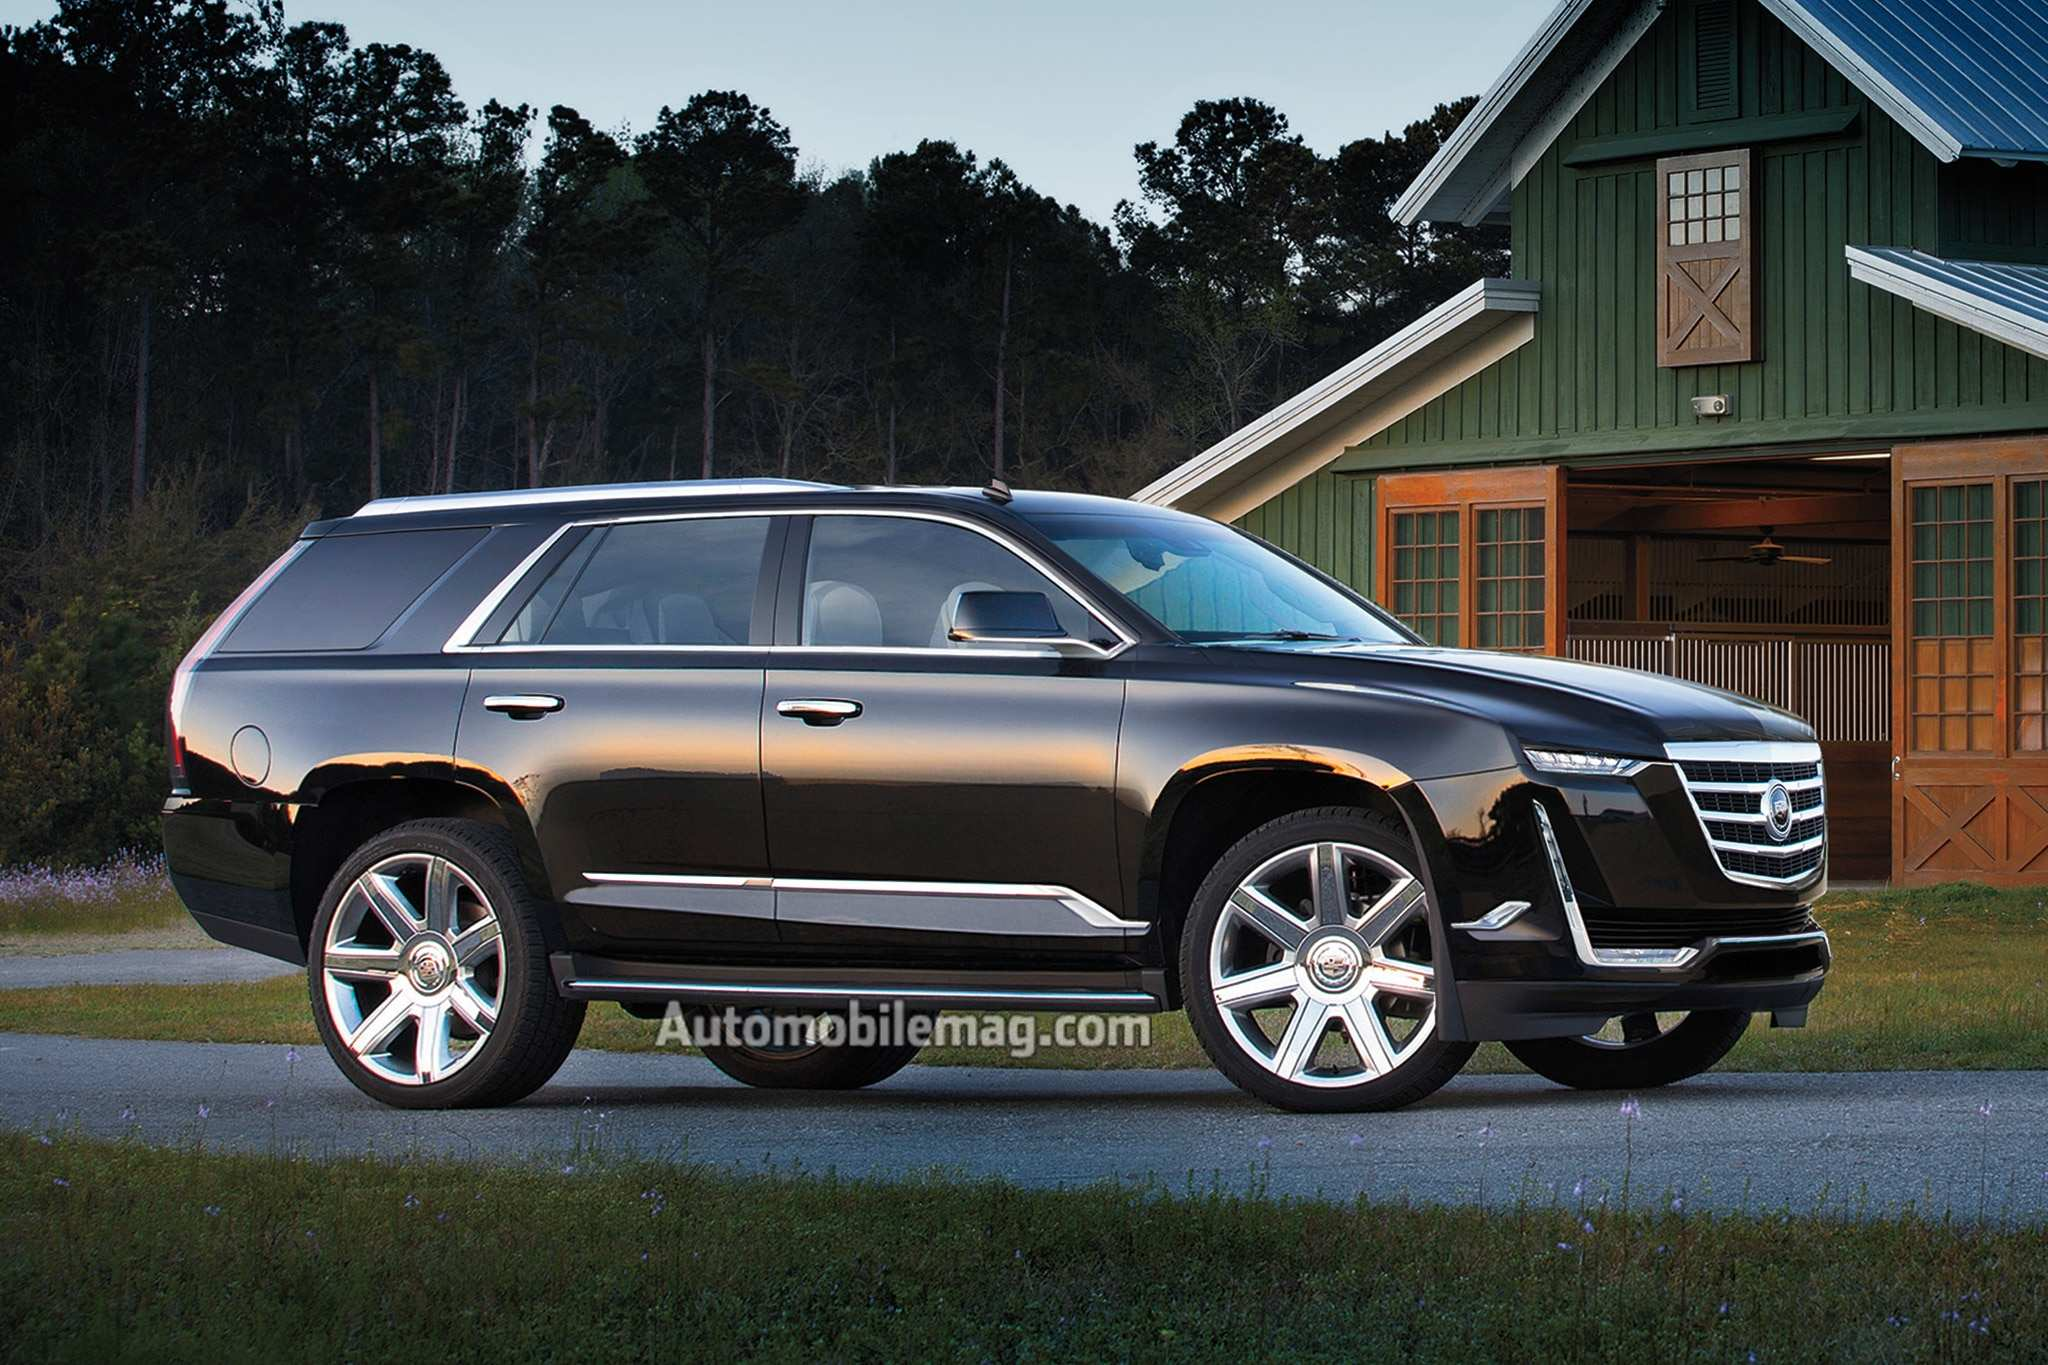 74 New 2020 Cadillac Fleetwood Series 75 Redesign And Concept